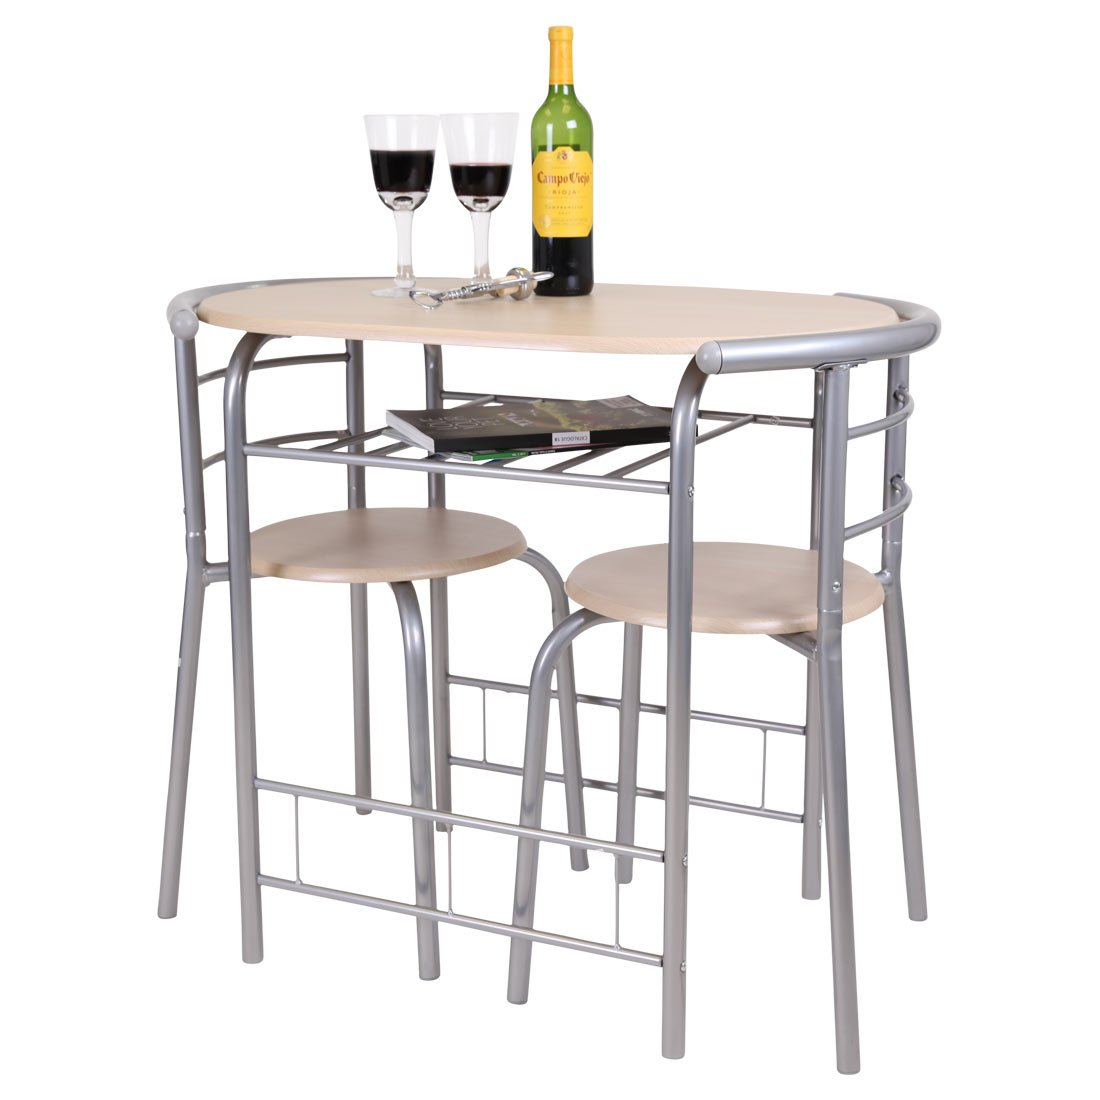 CHICAGO 3 PIECE DINING TABLE AND 2 CHAIR SET. BREAKFAST, KITCHEN, BISTRO, BAR (Light Oak) More4Homes